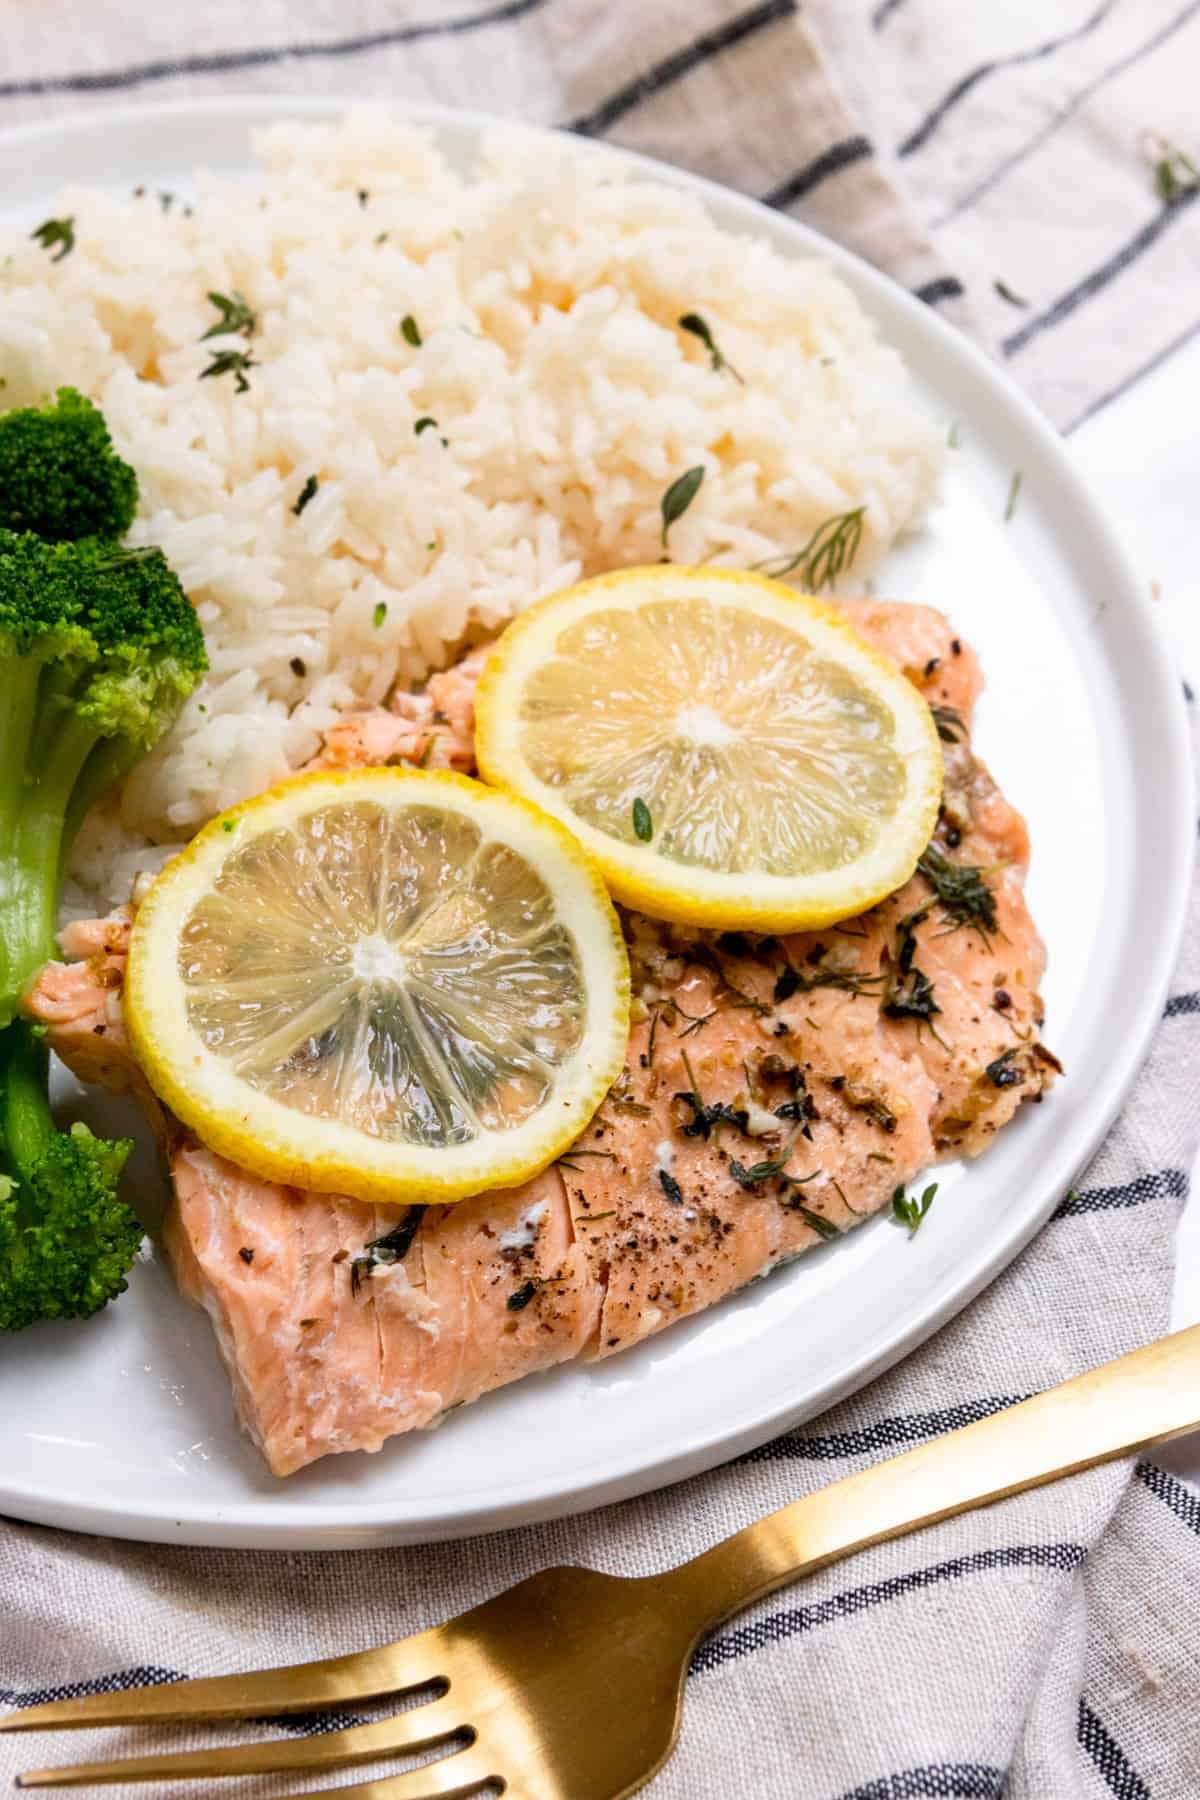 Salmon with lemon and herbs on plate with rice.